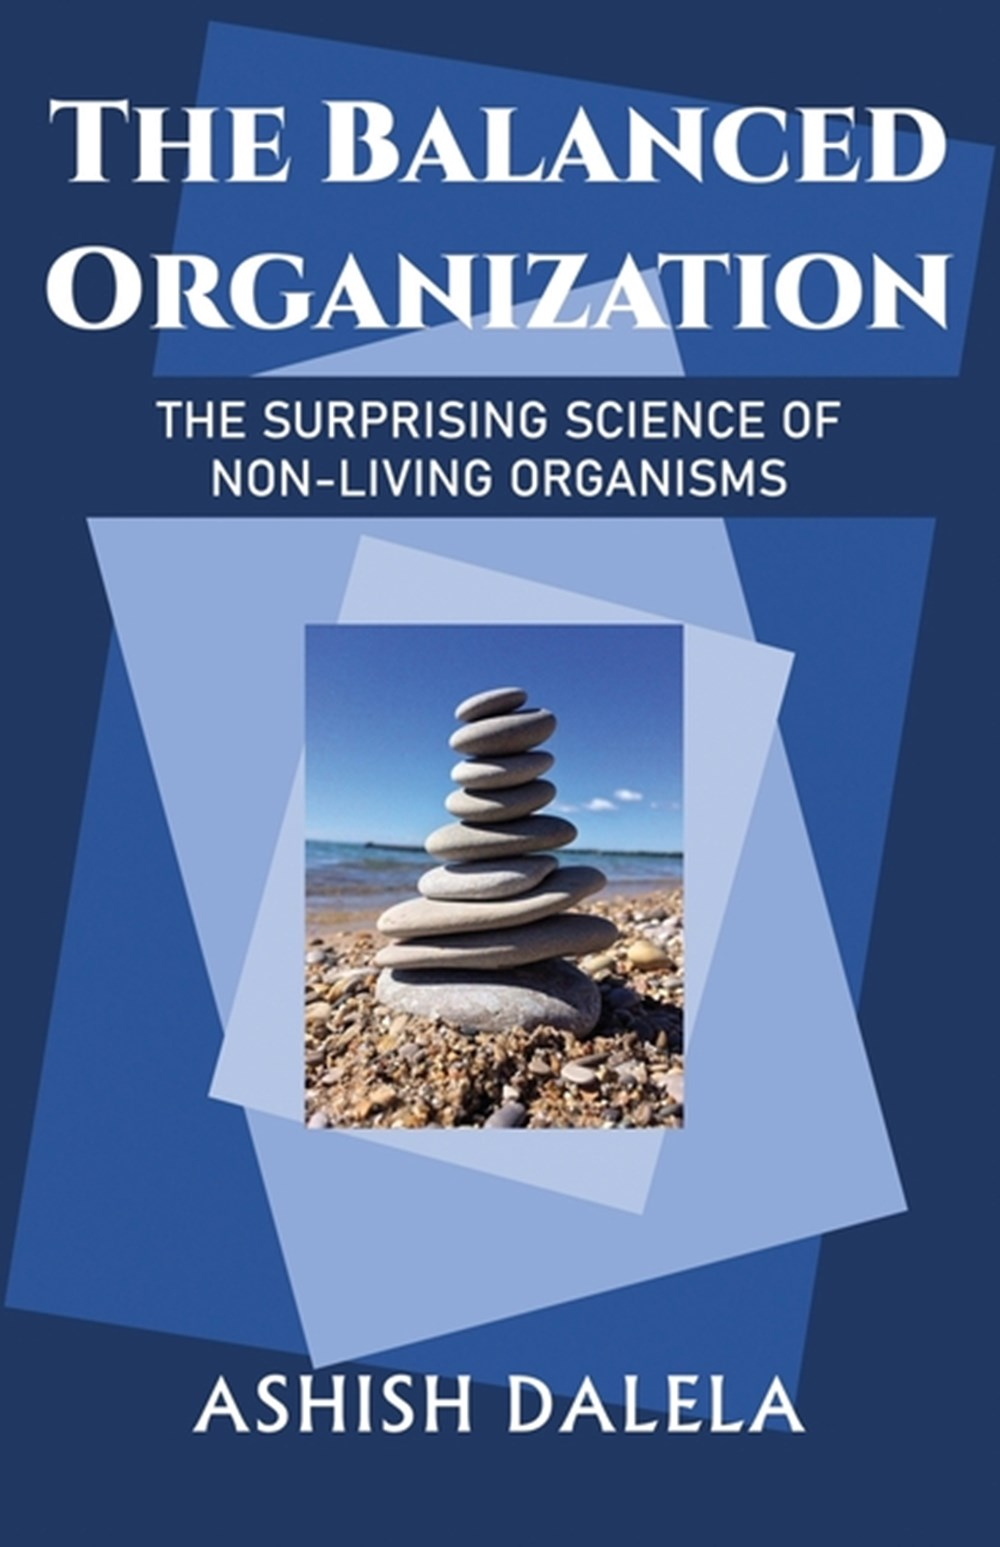 Balanced Organization The Surprising Science of Non-Living Organisms